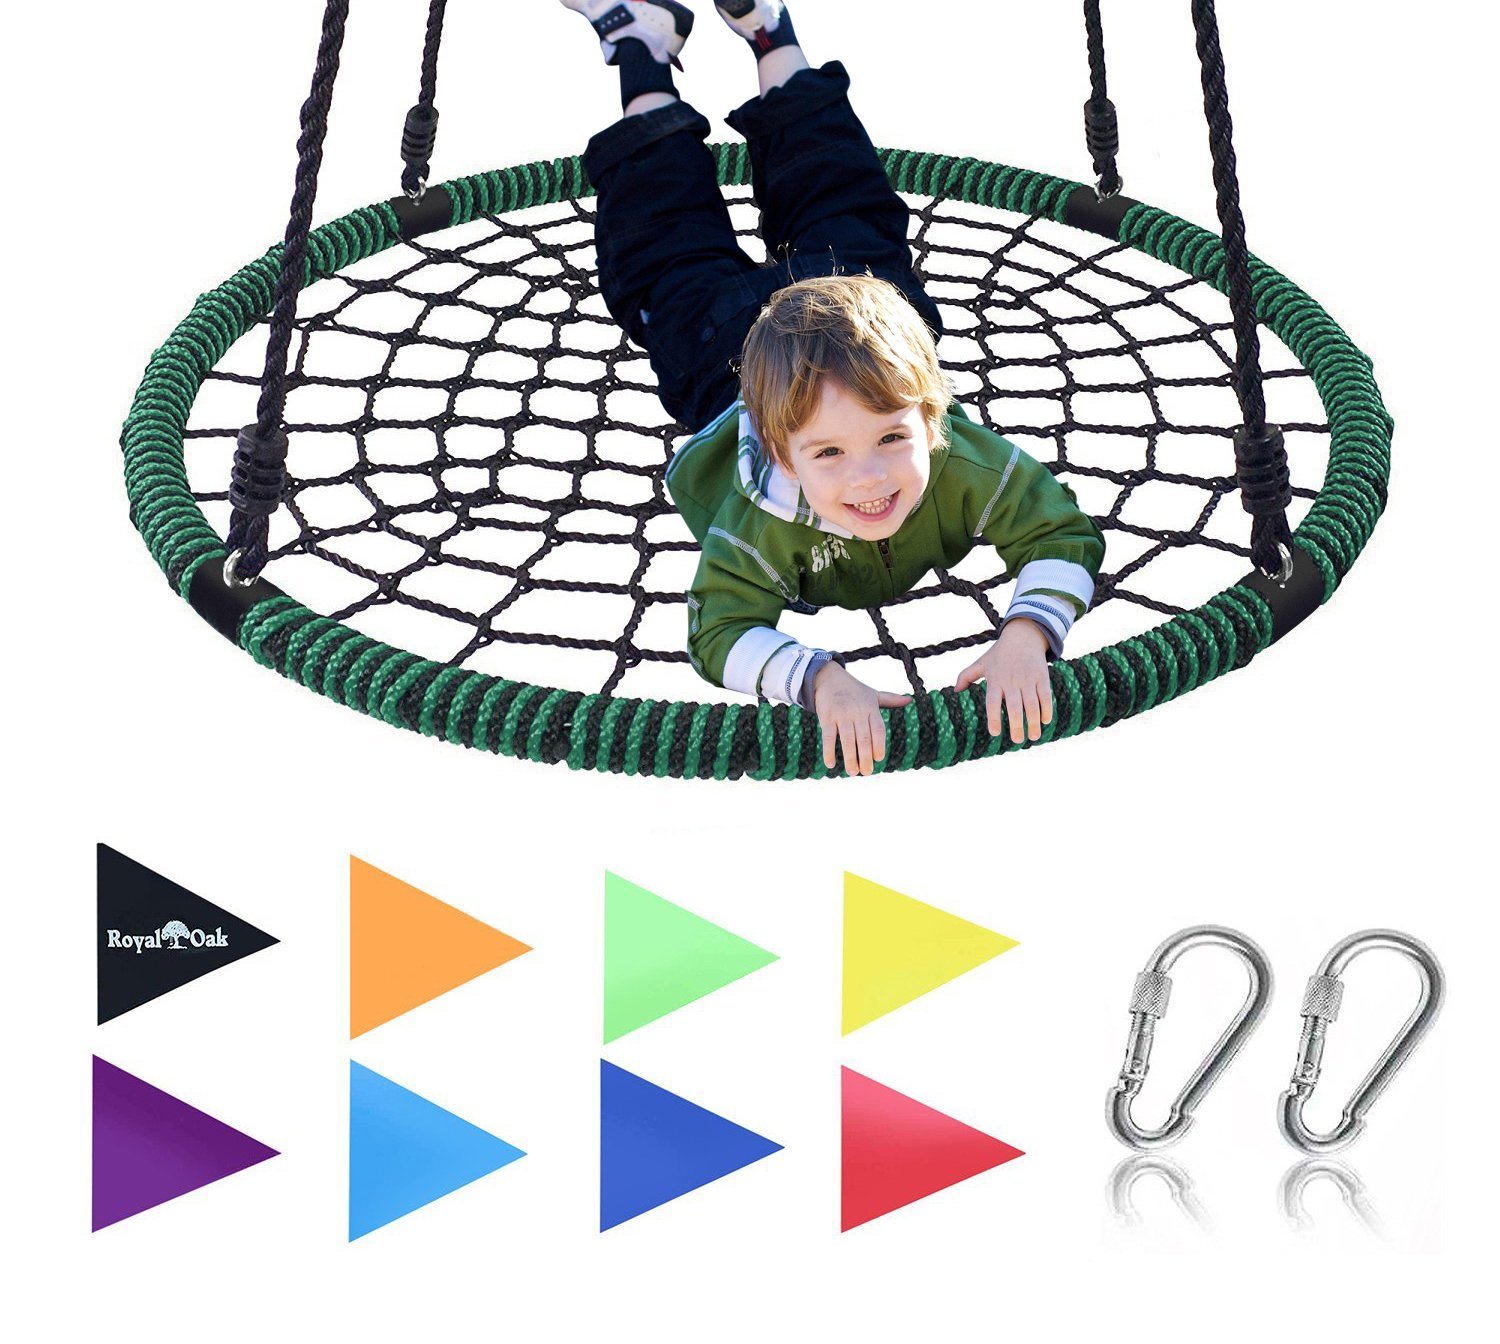 Royal Oak Giant 40'' Spider Web Tree Swing, 600 lb Weight Capacity, Durable Steel Frame, Waterproof, Adjustable Ropes, Bonus Flag Set and 2 Carabiners, Non-Stop Fun for Kids! by Royal Oak